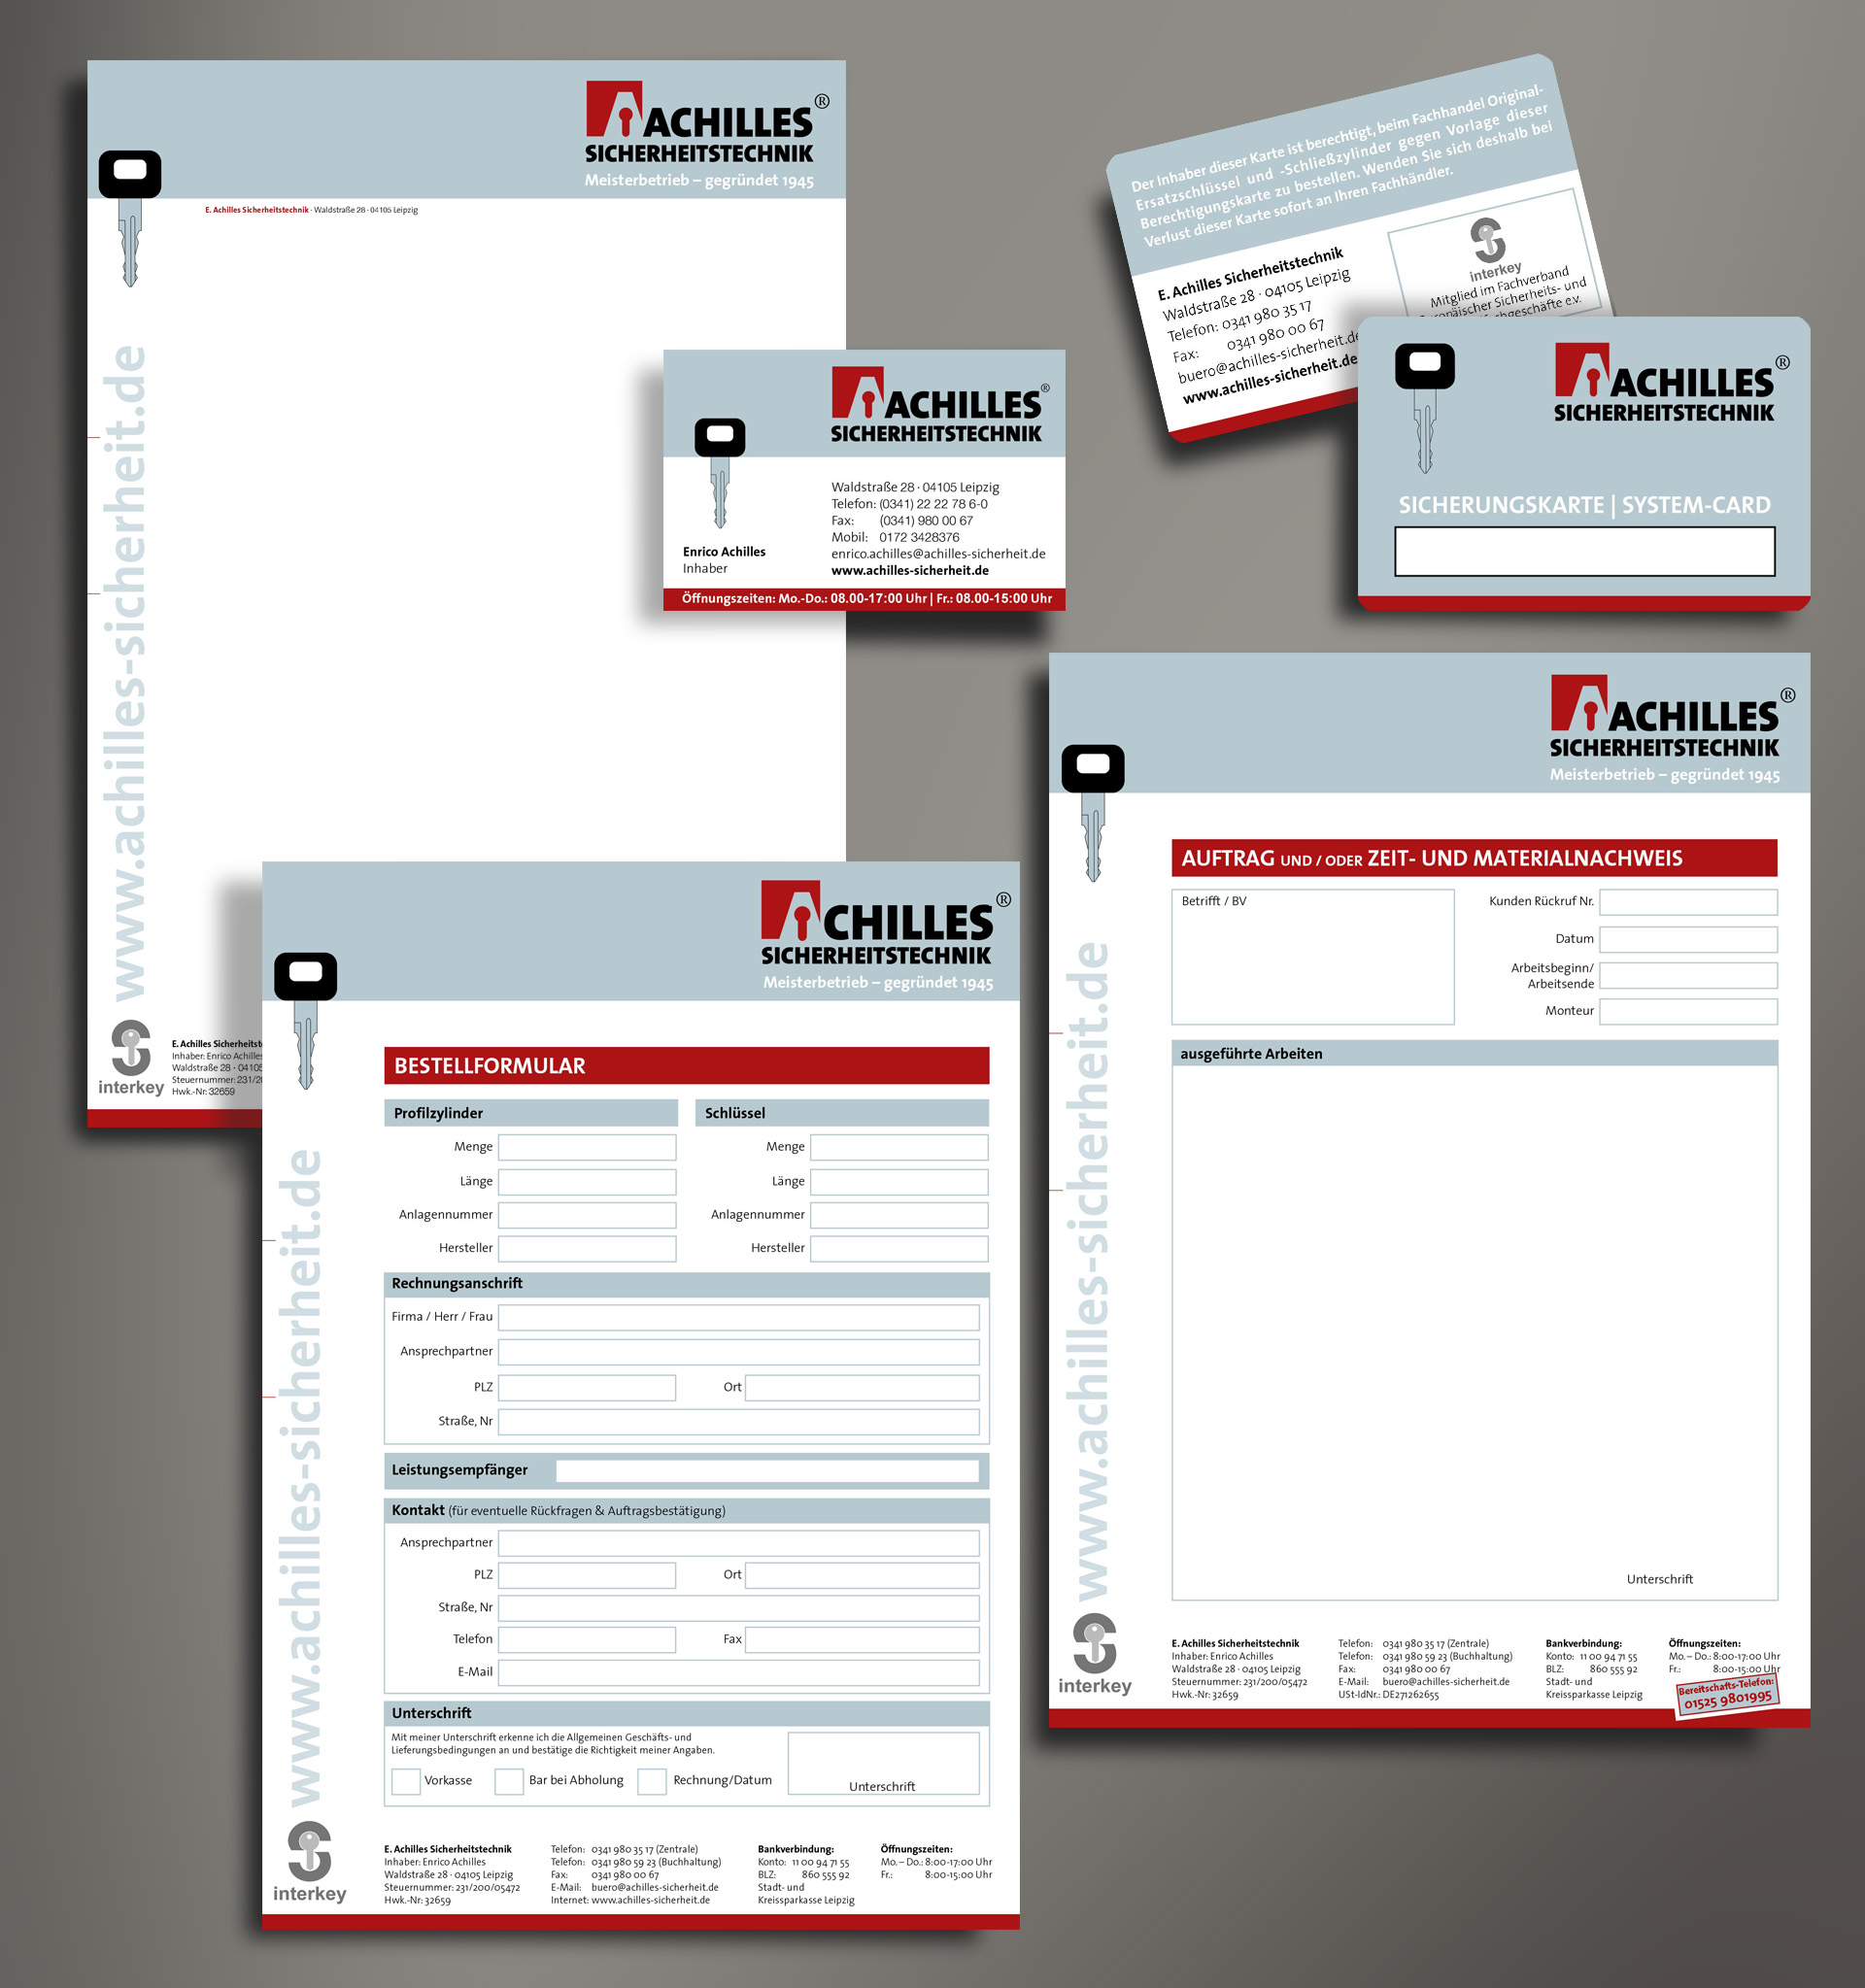 Corporate Design Achilles Sicherheitstechnik Reichelt